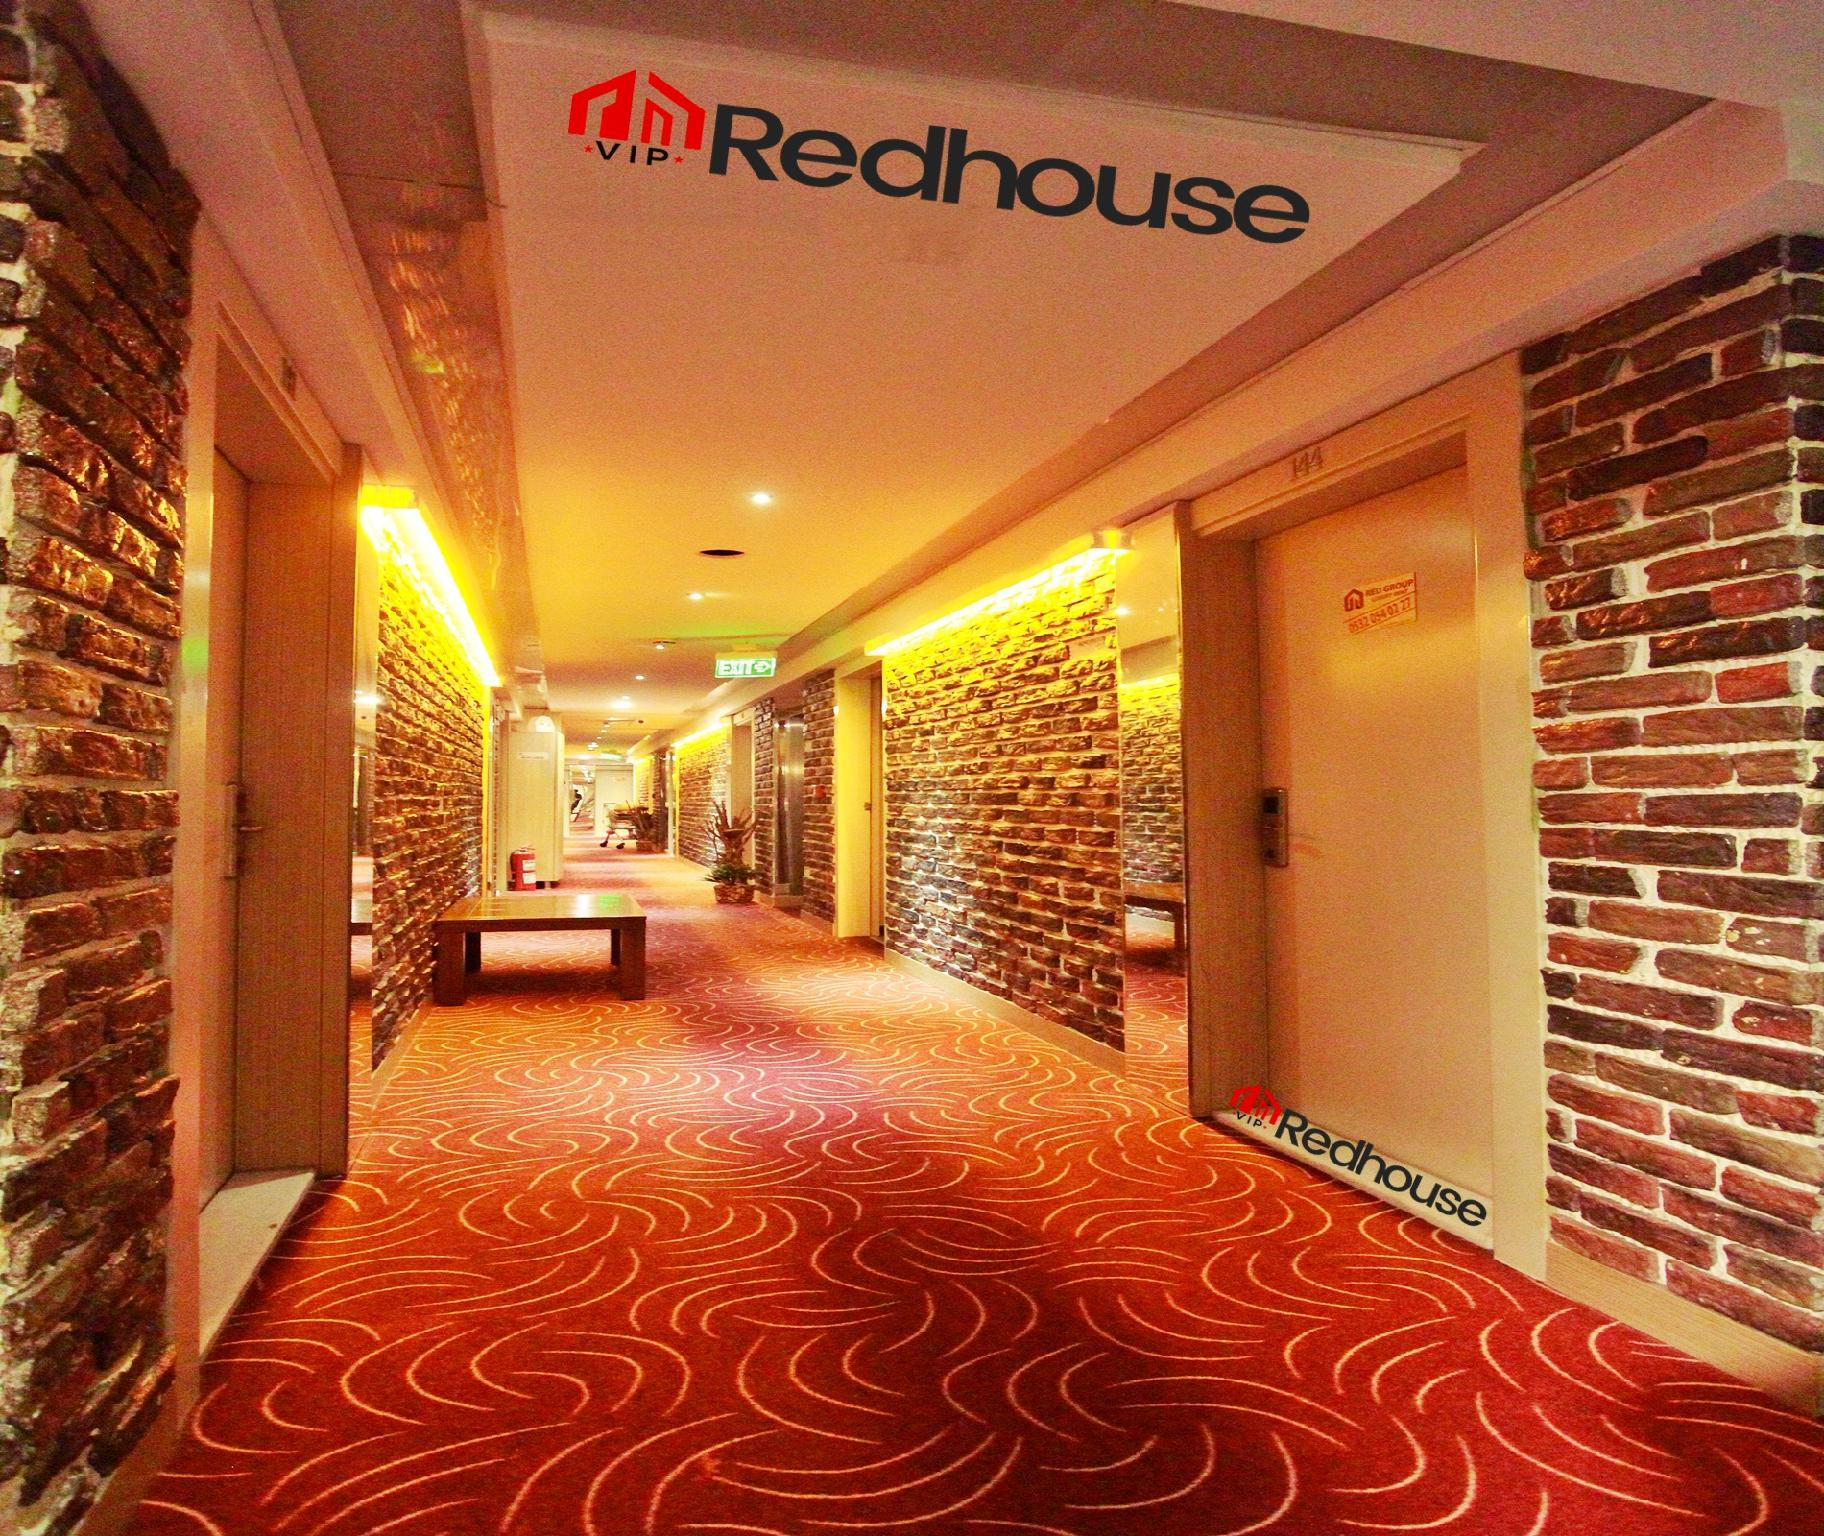 RED HOUSE V.i.P APARTMEN'S SUiT